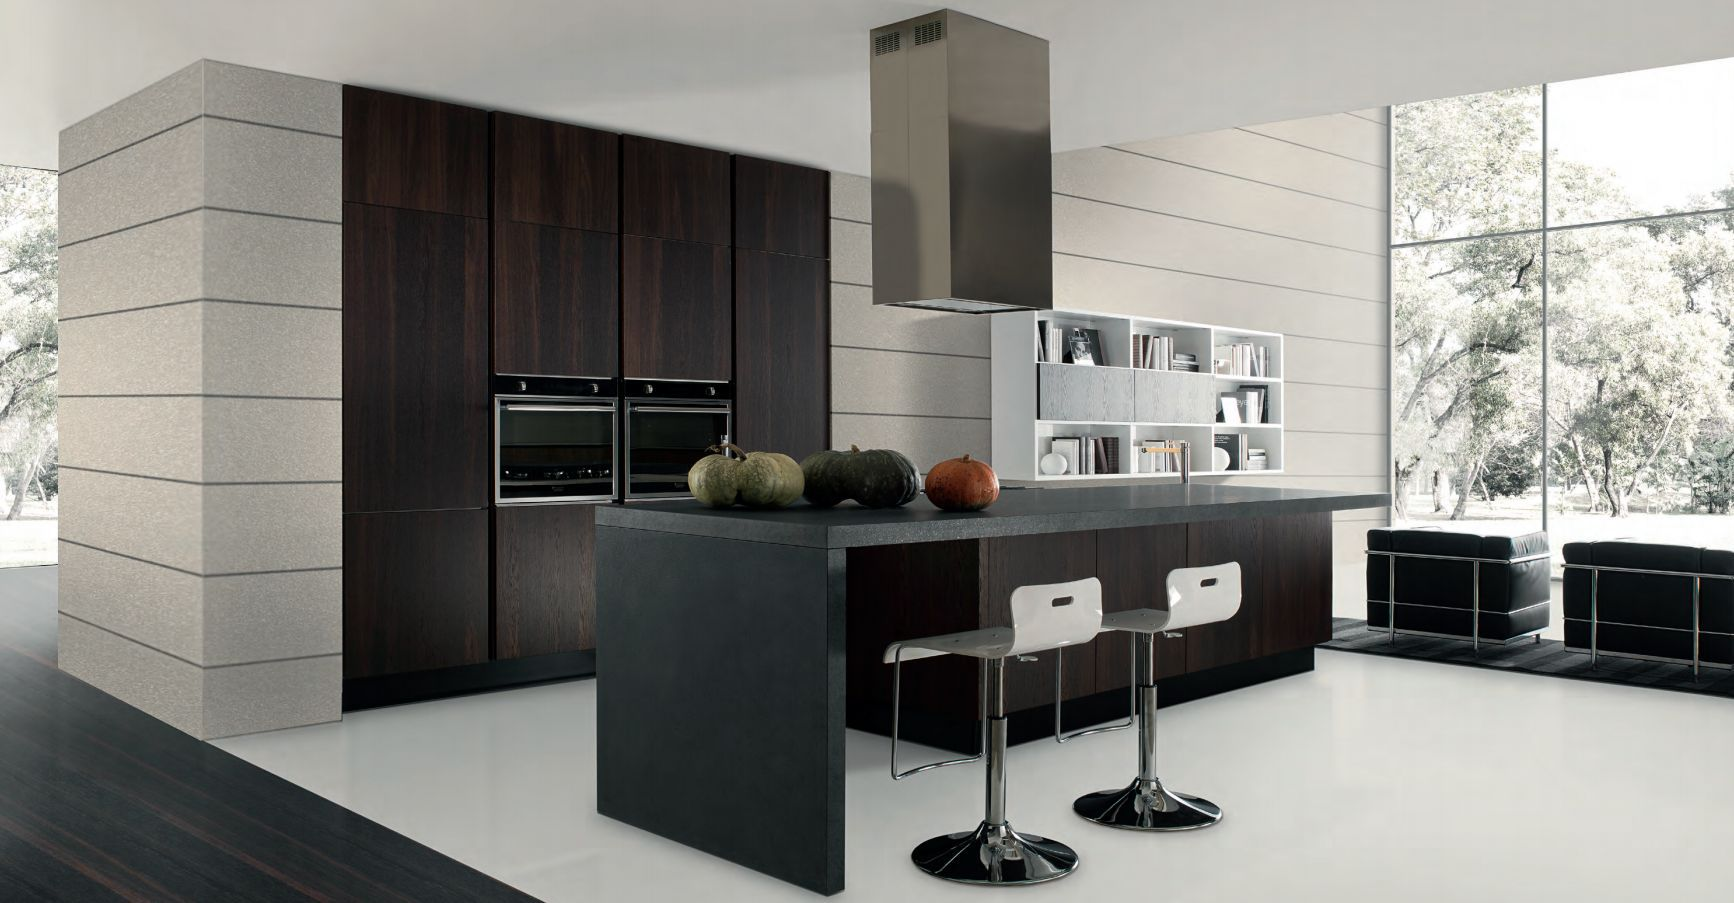 Uncategorized Ultra Modern Kitchen Design kitchens so modern they deserve another adjective